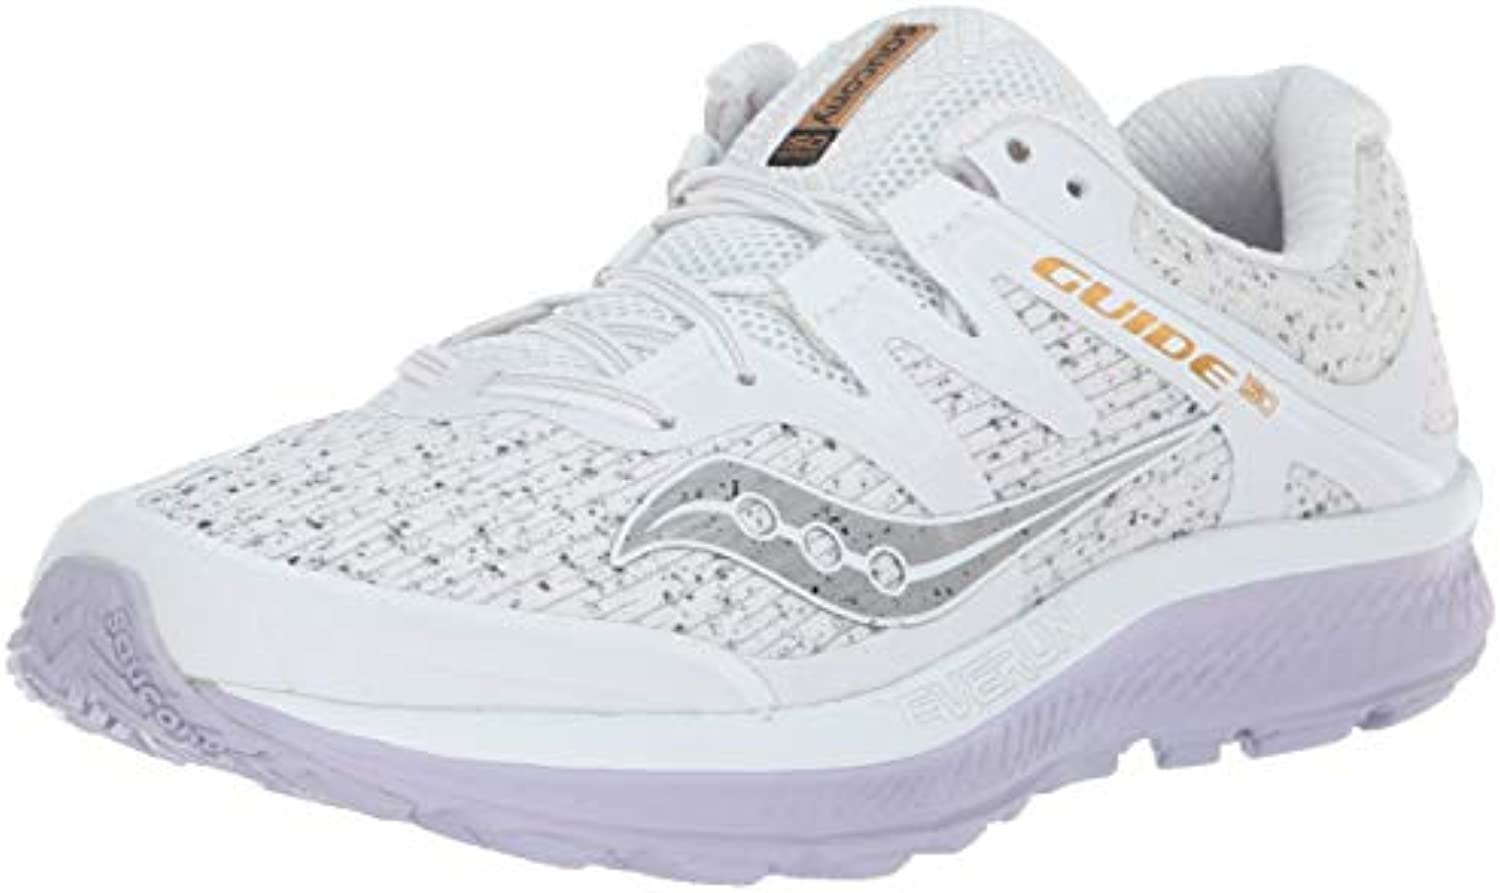 Saucony Guide Iso, Chaussures Chaussures Iso, de Running Compétition FemmeB07C7TVVTDParent 3f27c6